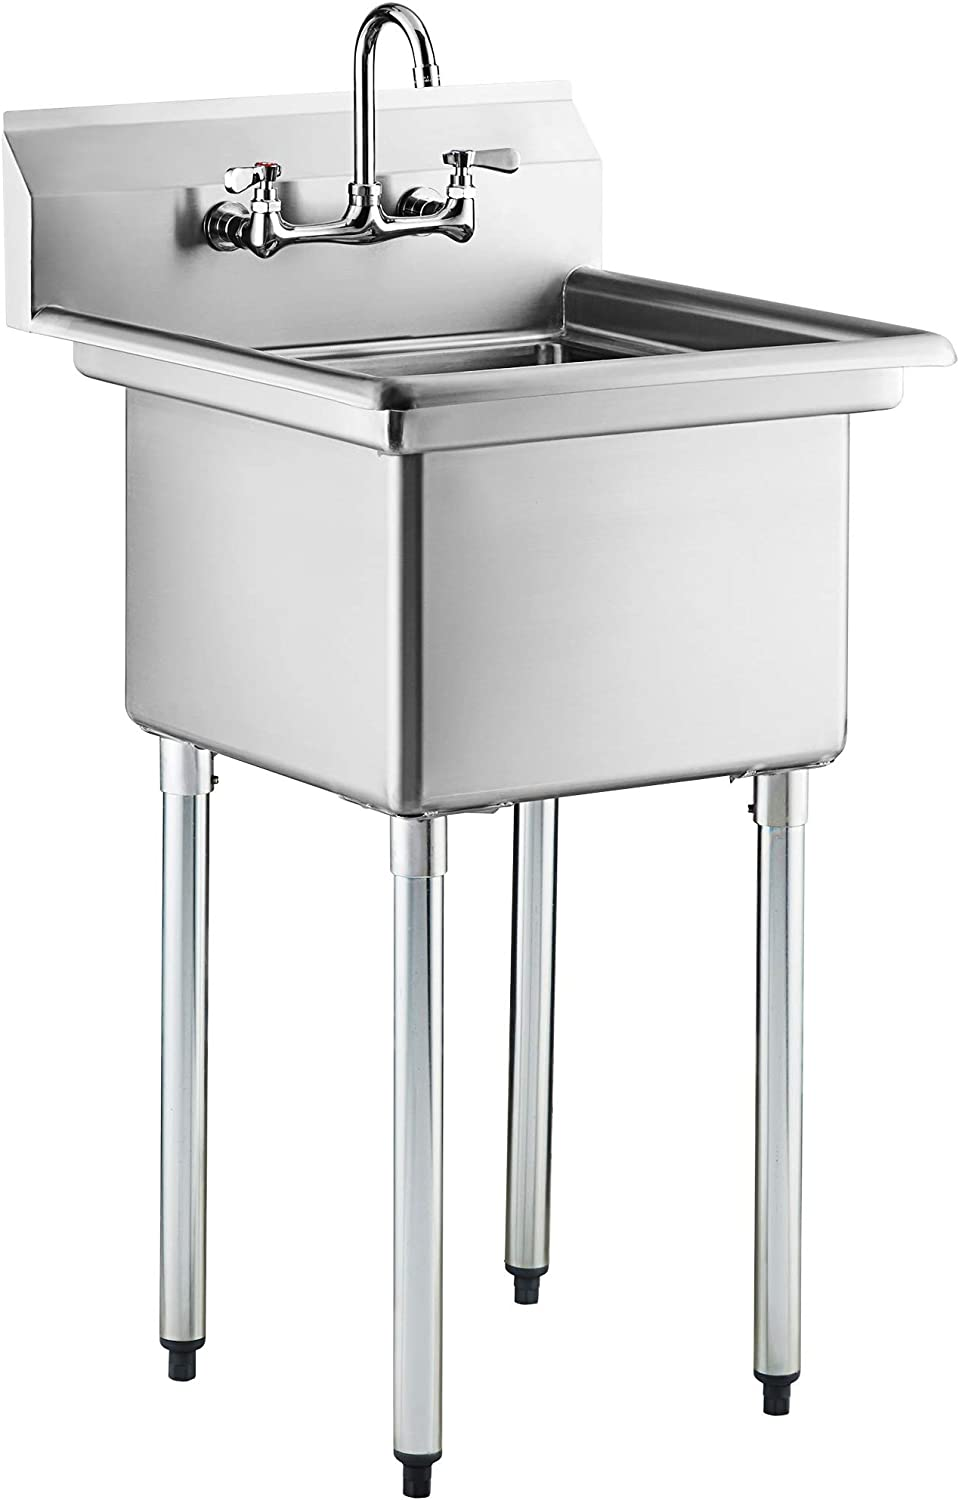 One Compartment Commercial Sink with Faucet | Single 18